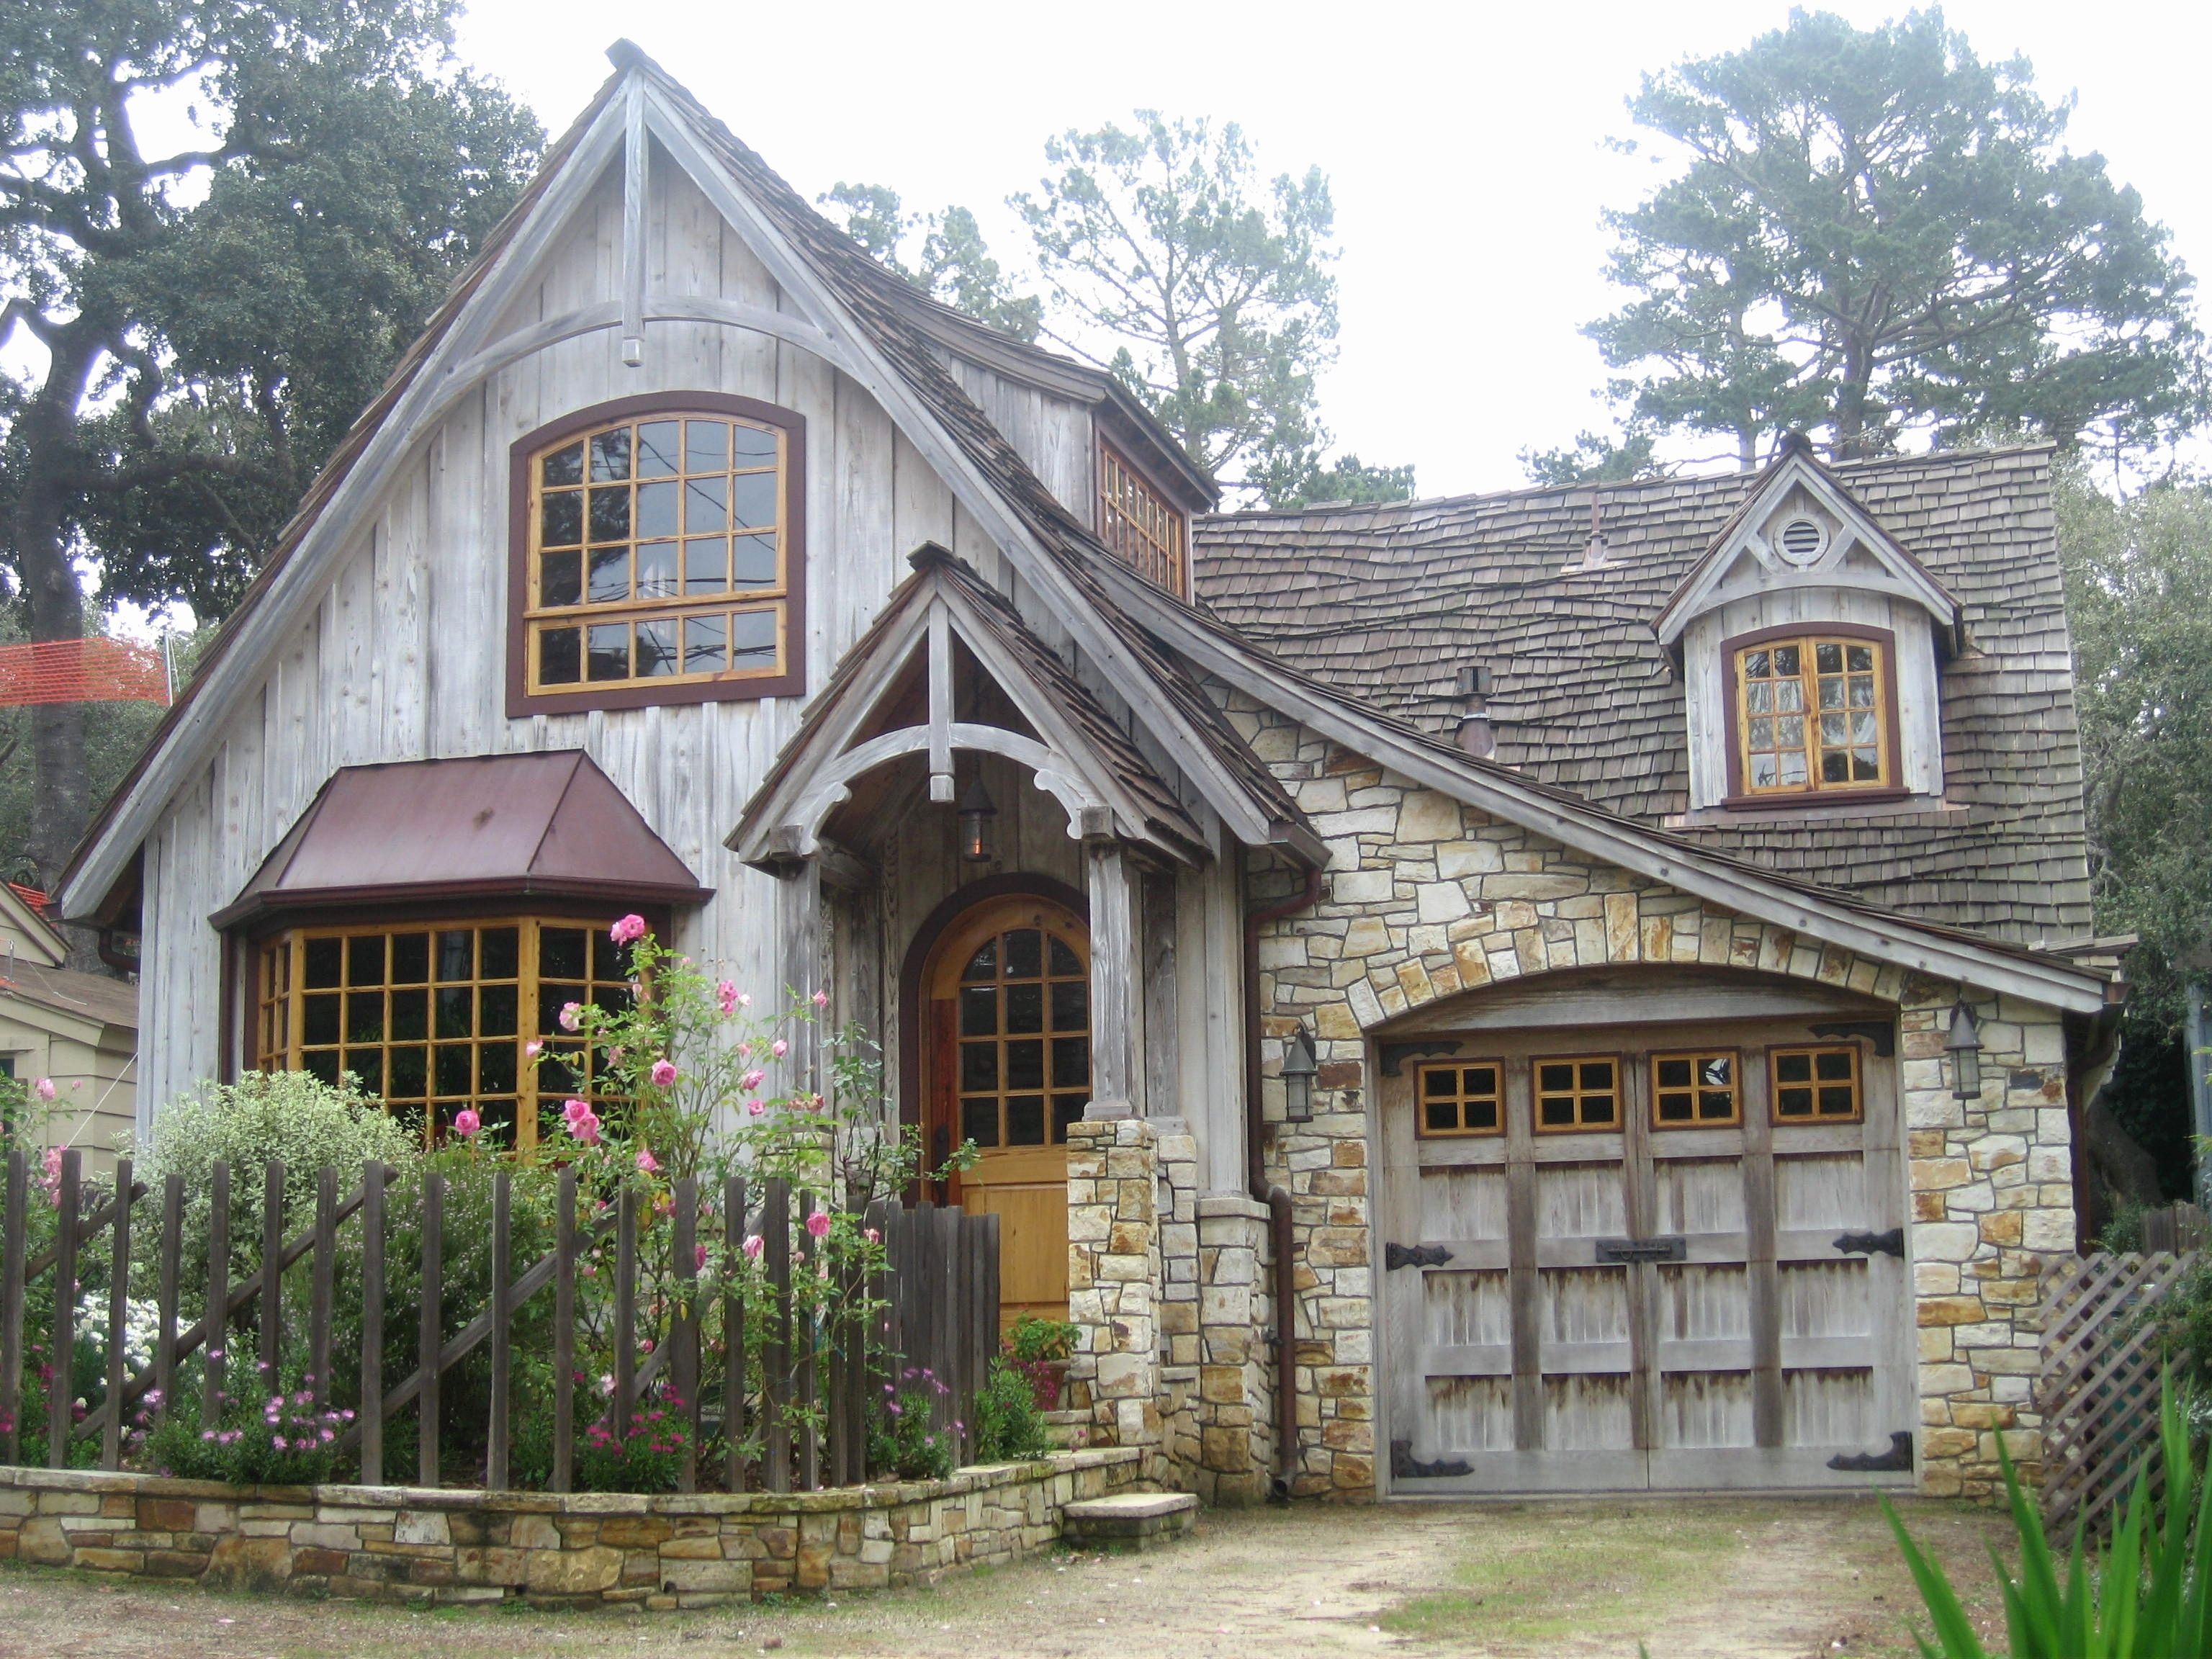 Google Image Result For Http Www Grandviewriverhouse Com Box Ne French Country Cottage House Plans French Country Cottage Decor Dream Cottage Storybook Homes